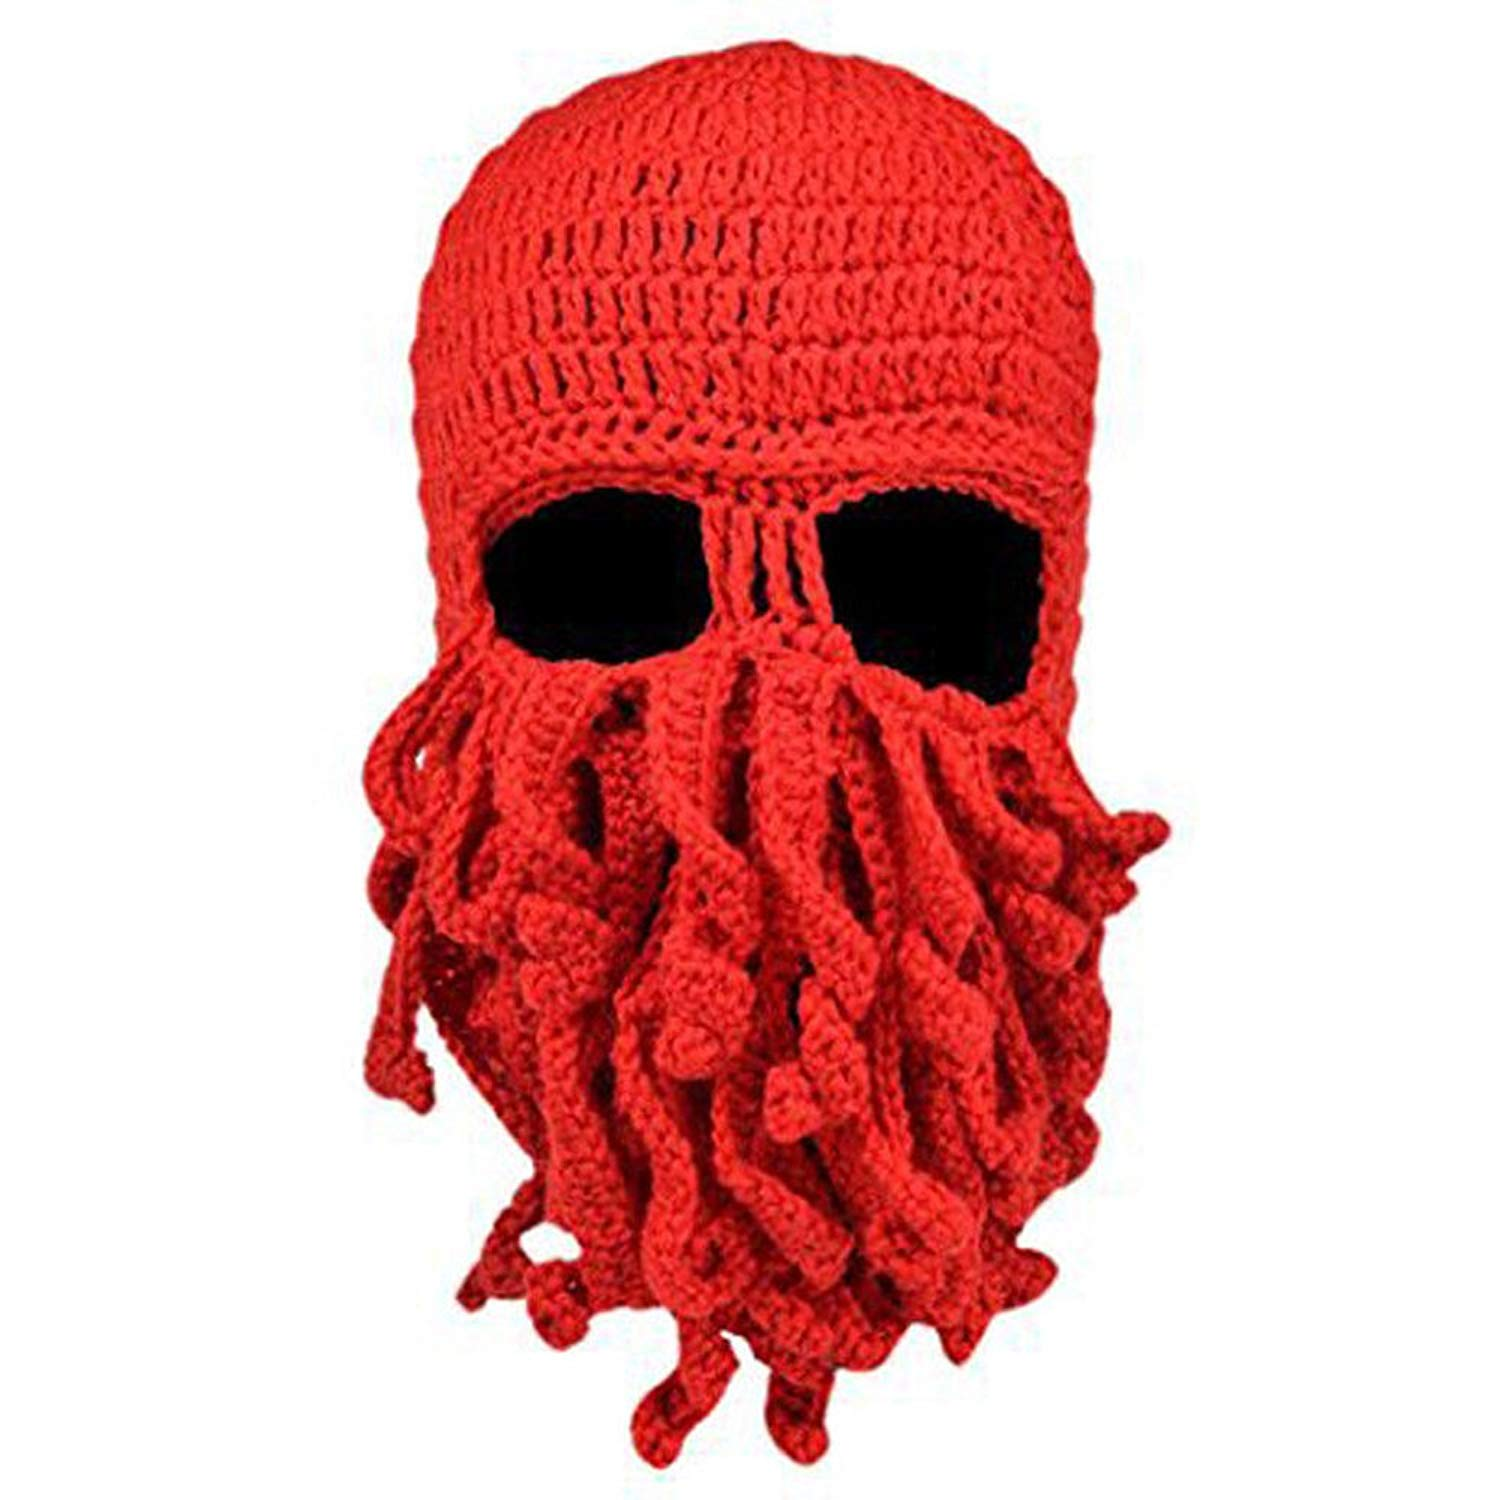 NEEVAS Unisex Octopus Warm Knitted Wool Ski Face Mask Knit Hat Squid Cap Beanie